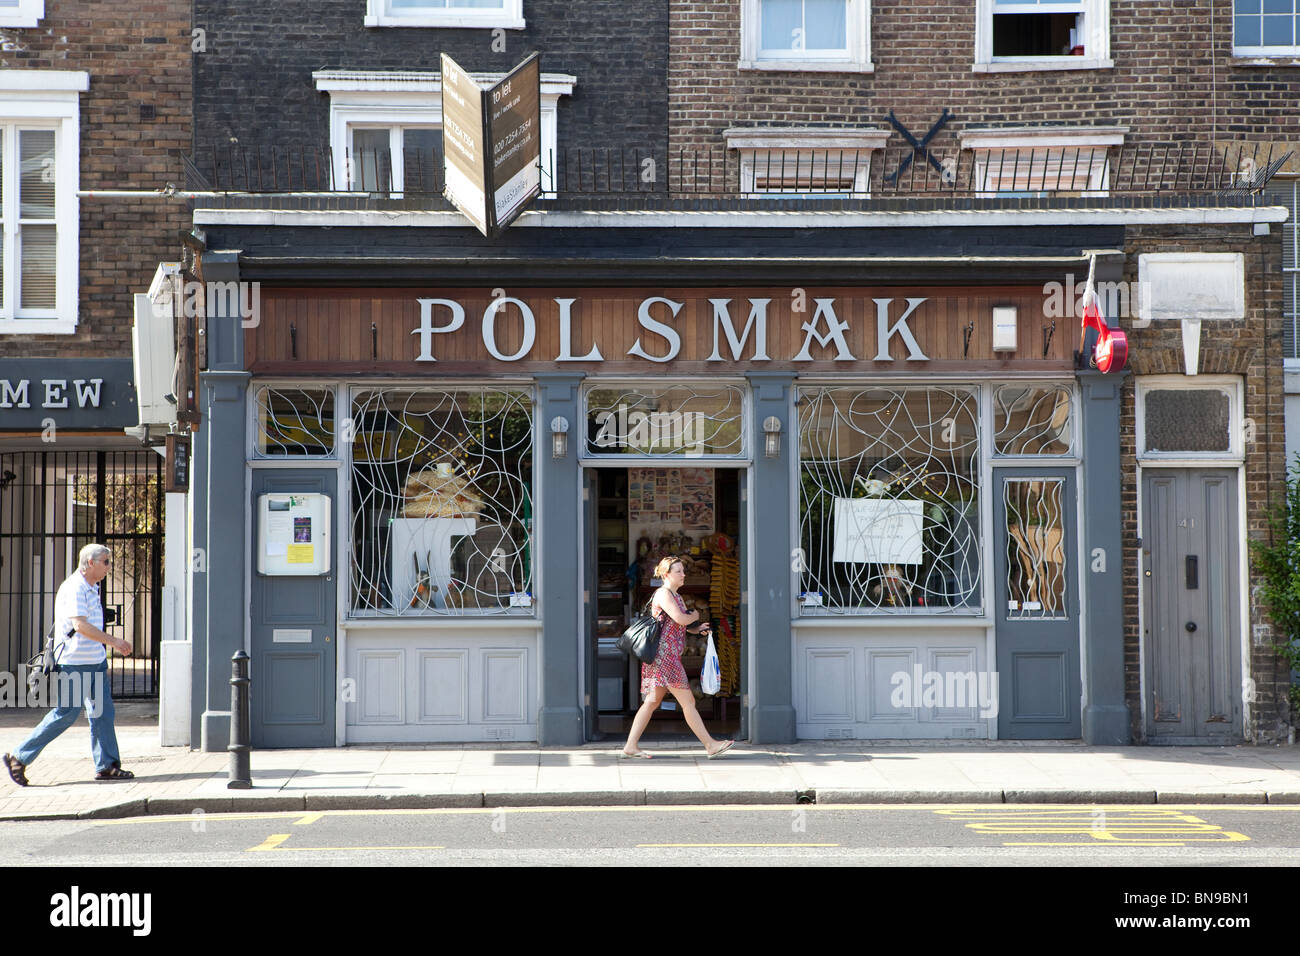 Polsmak, Polish shop, Balls Pond Road, Hackney London - Stock Image